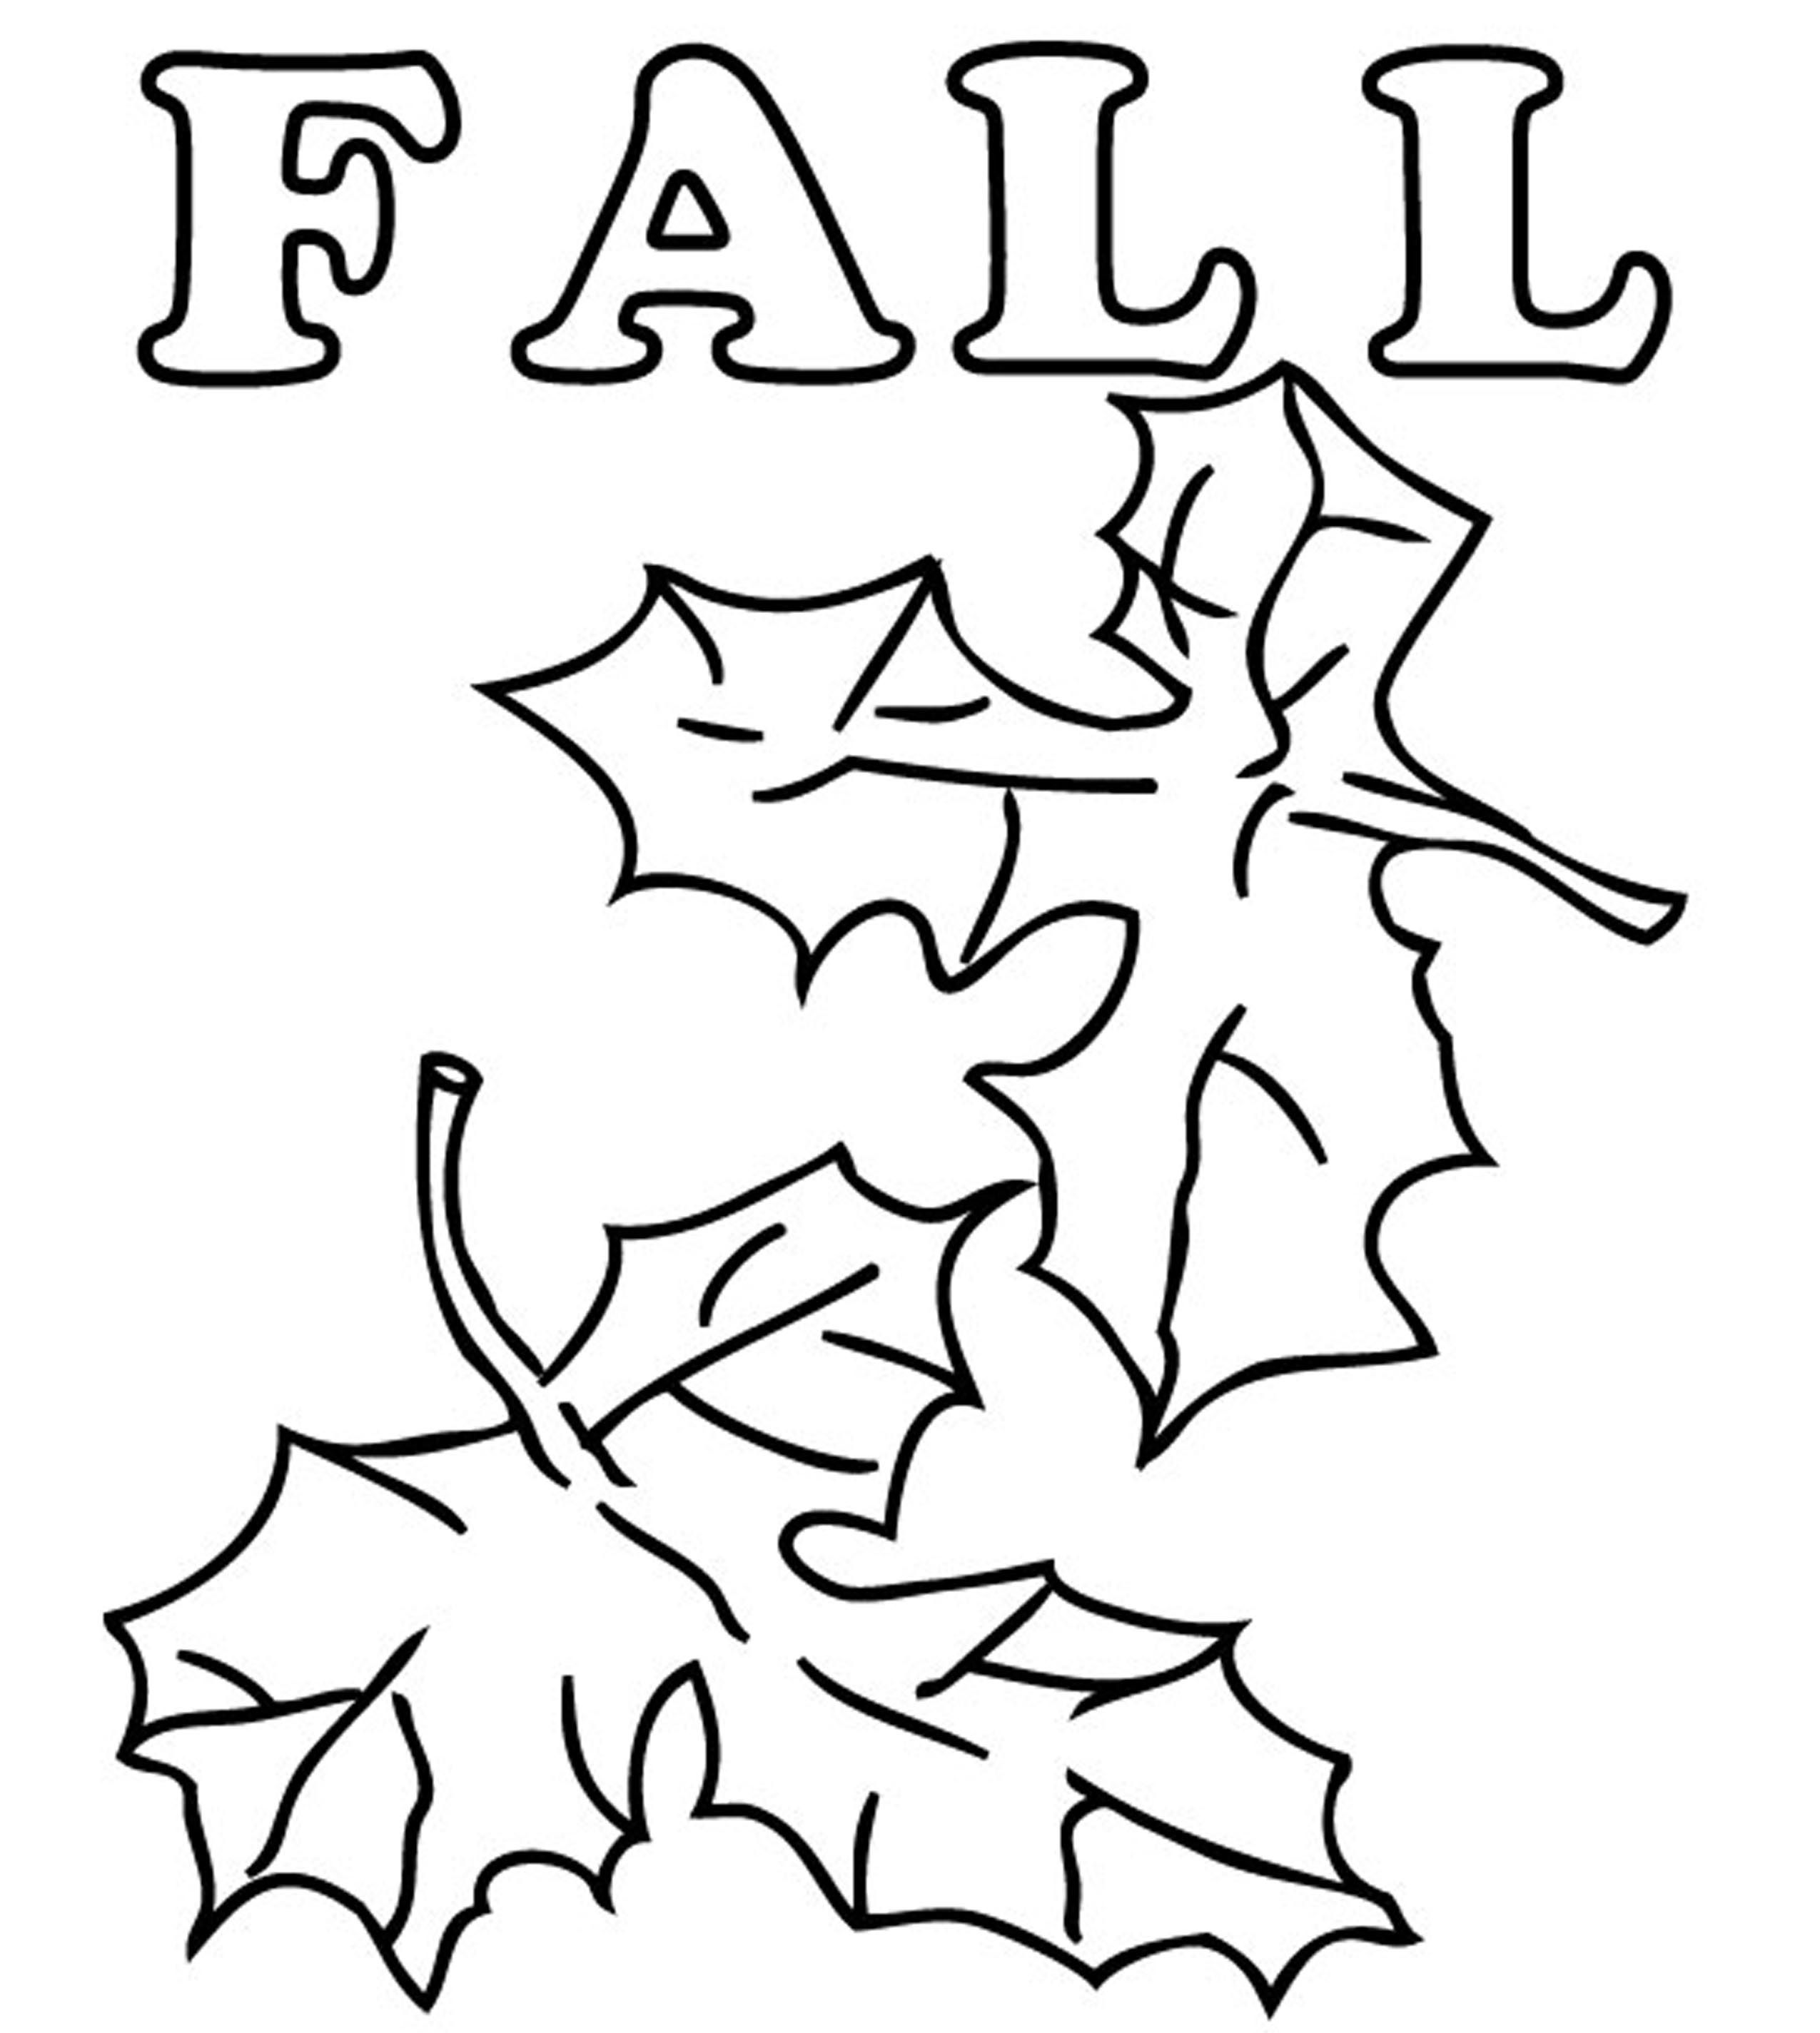 coloring pages leaves fall autumn leaf coloring page coloring home pages coloring leaves fall 1 1